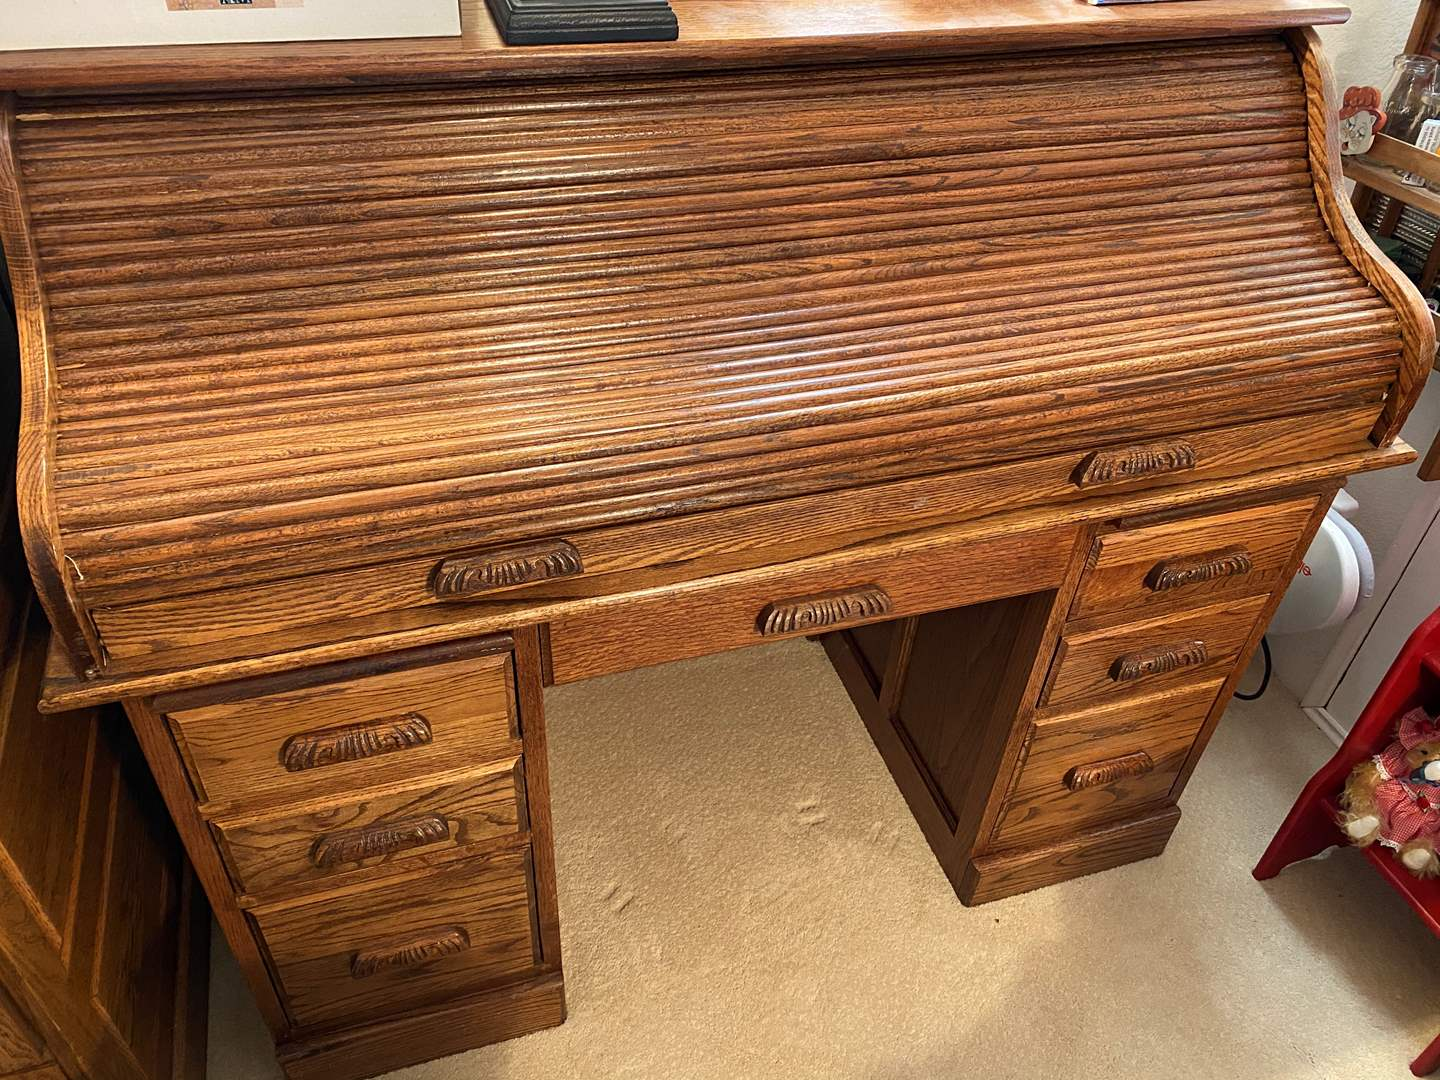 Lot # 378 - Rolltop Desk with Contents (main image)